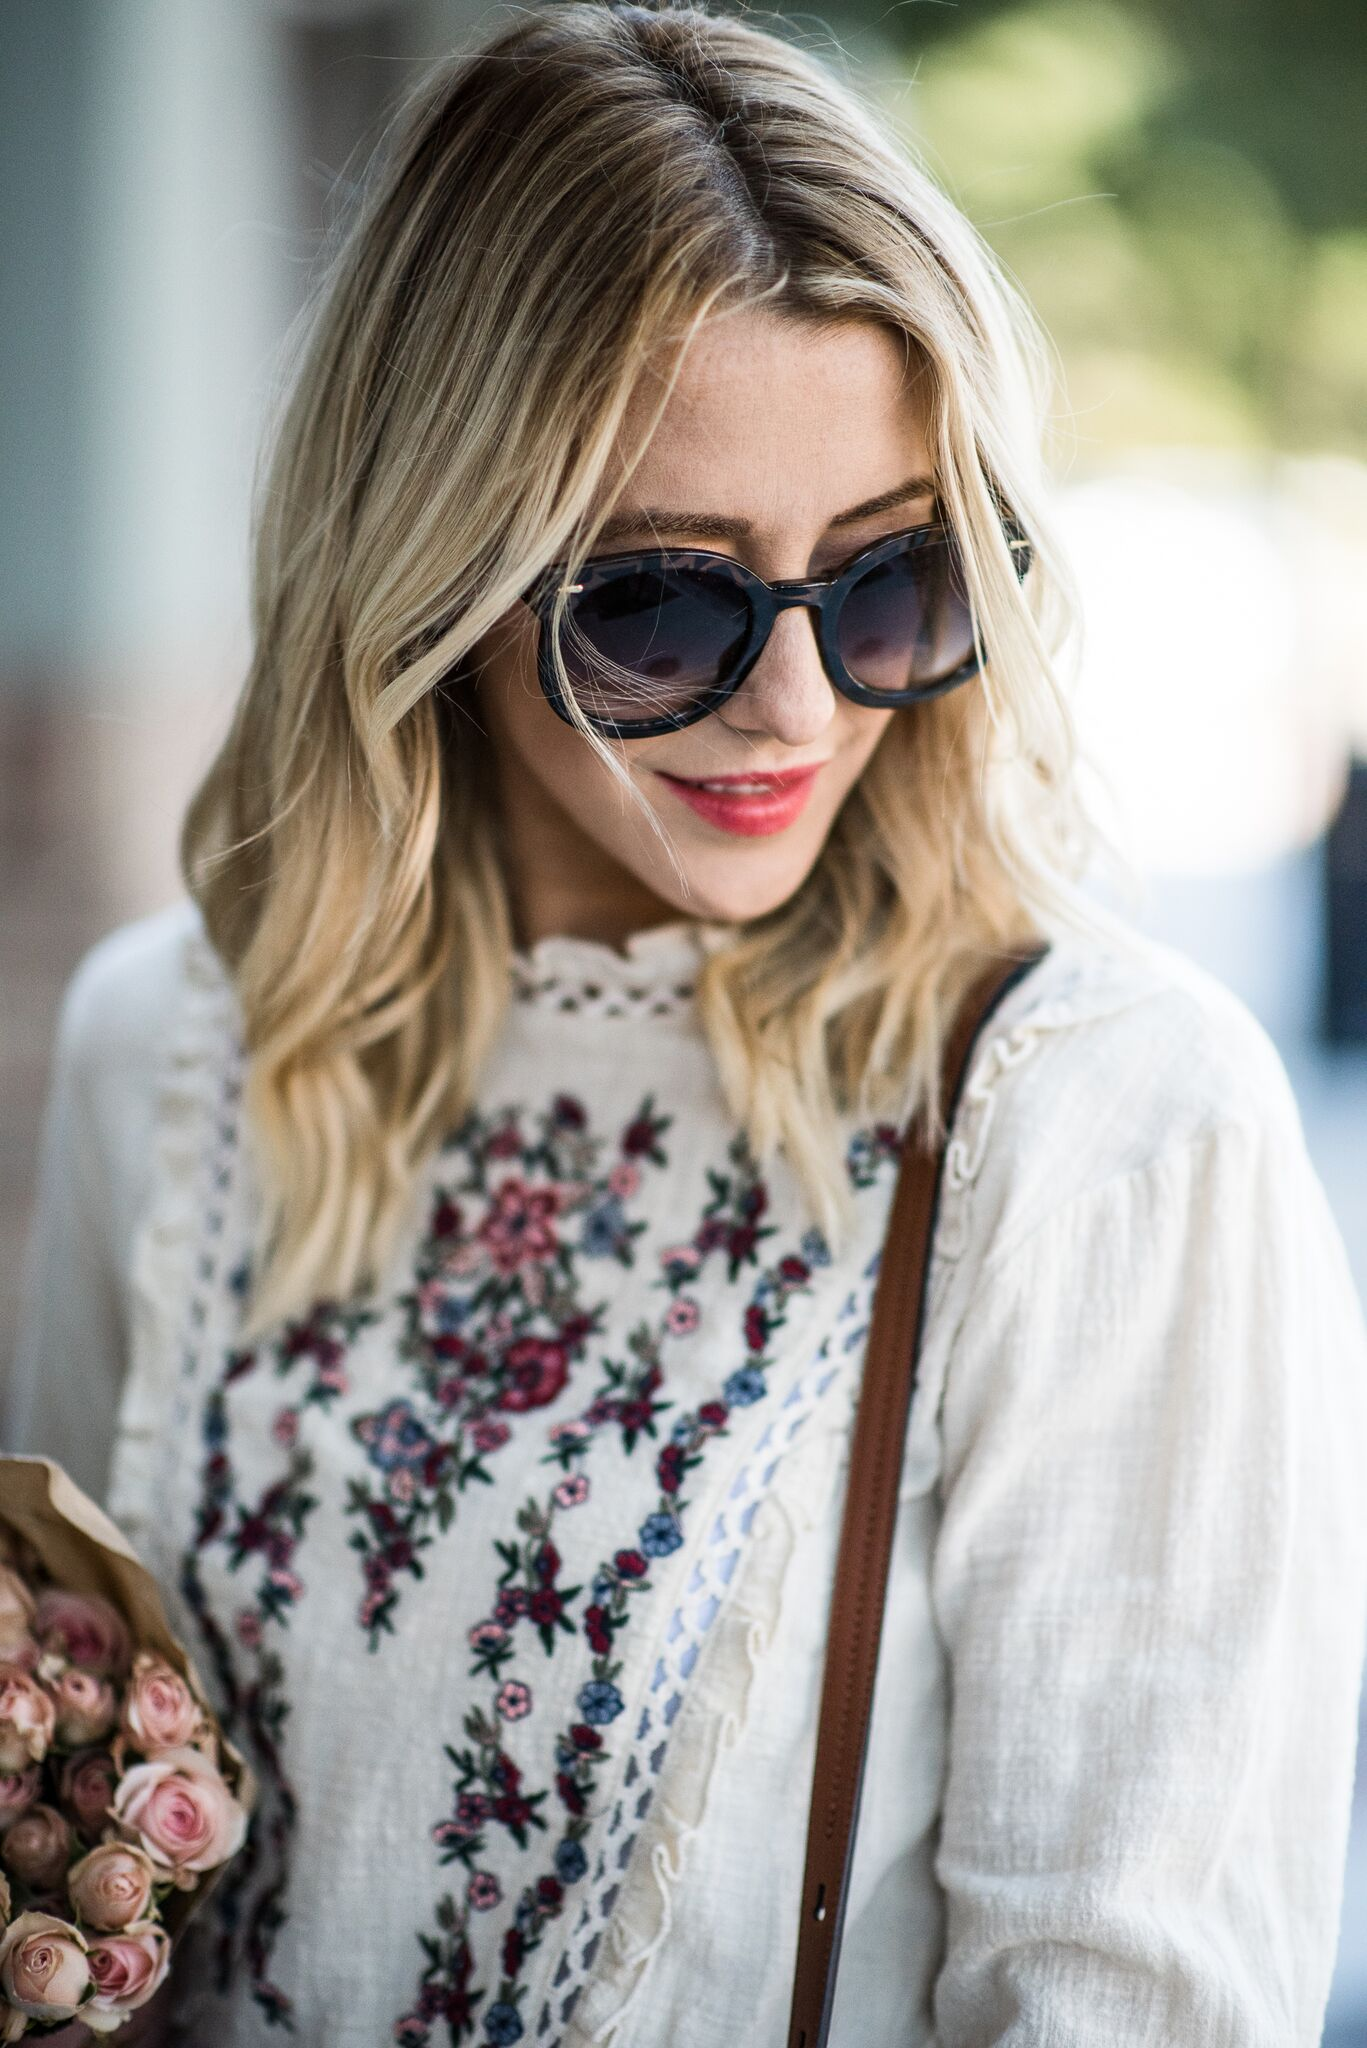 Cheaper Brands {that still SLAY} to shop during the SHOPBOP SALE by San Francisco fashion blogger For The Love